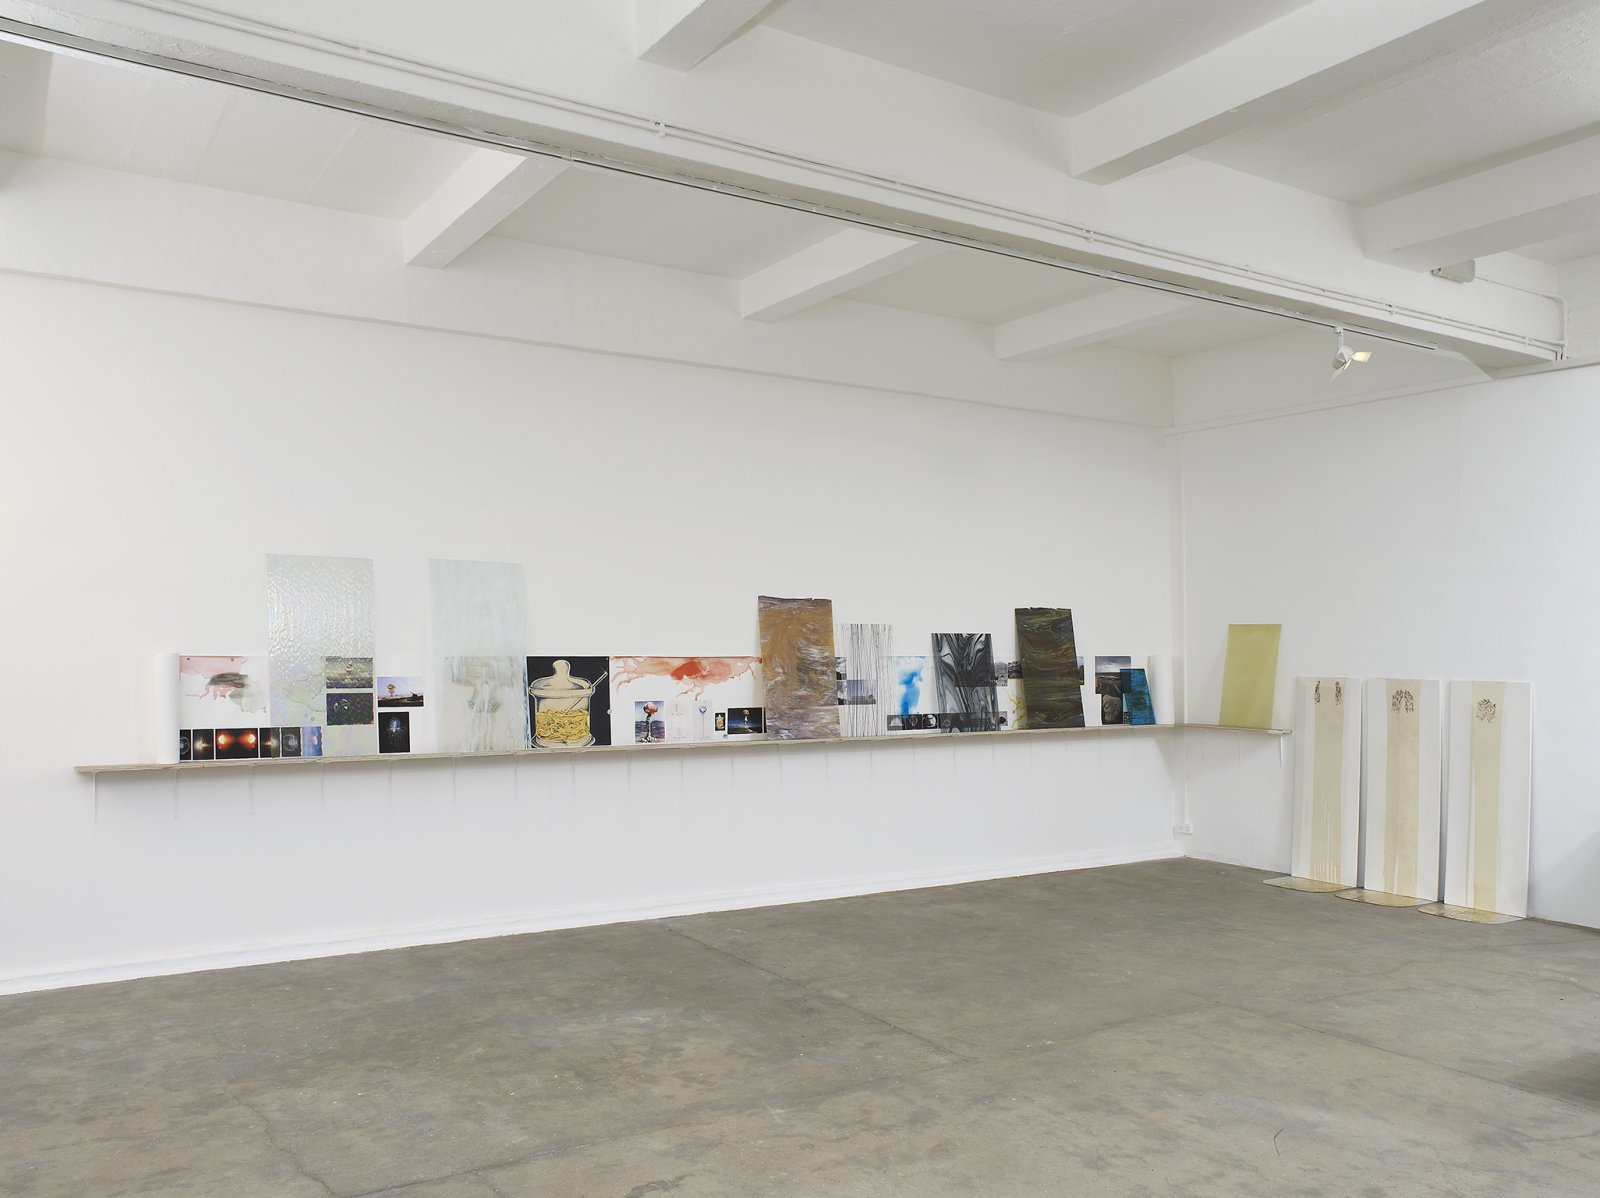 Christina Mackie, The Roiling, 2012, mixed media, dimensions variable. Installation view, Painting the Weights, Chisehale Gallery, London, UK, 2012 by Christina Mackie